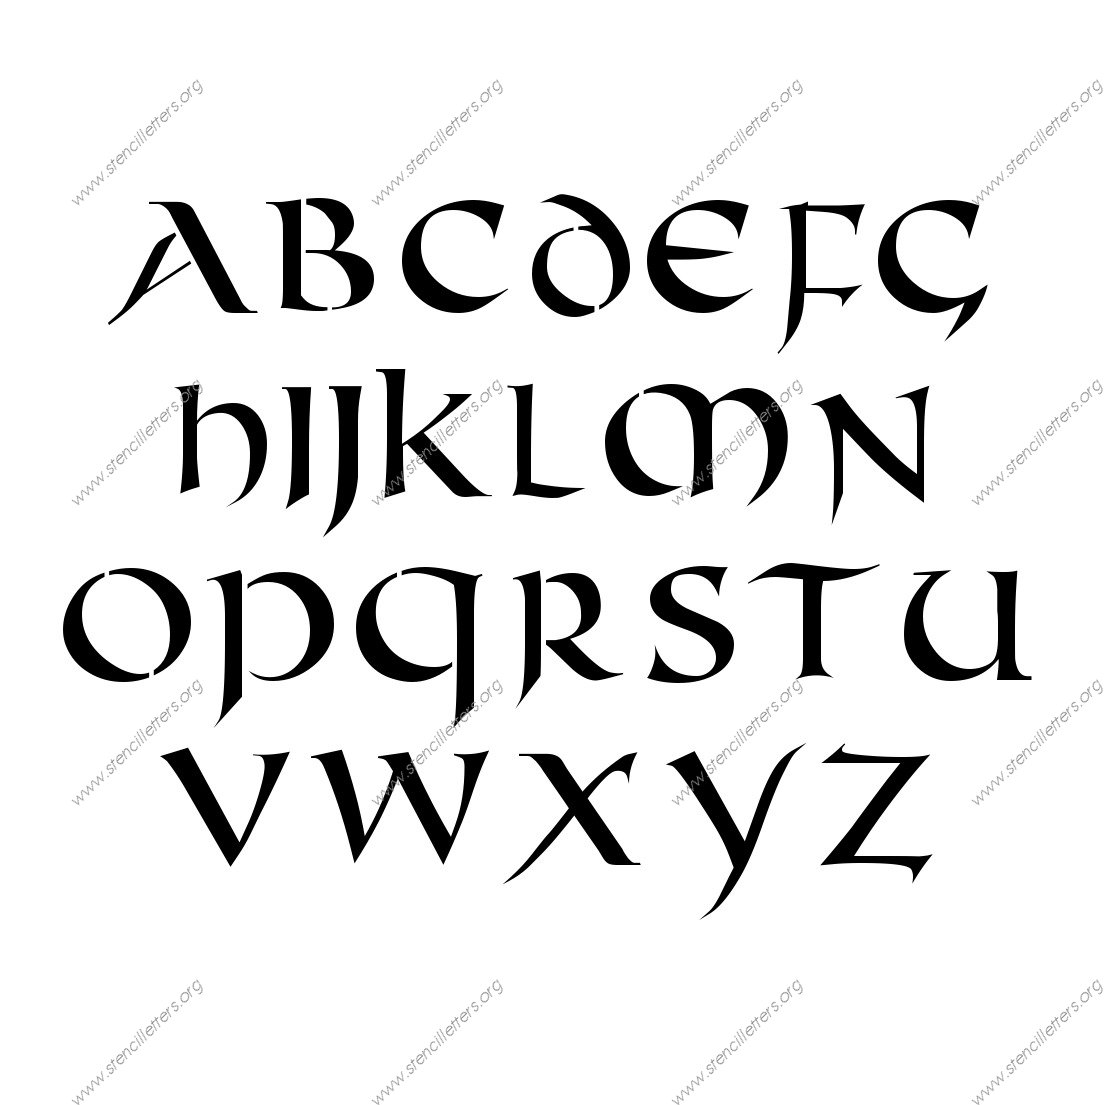 Celtic International A to Z alphabet stencils